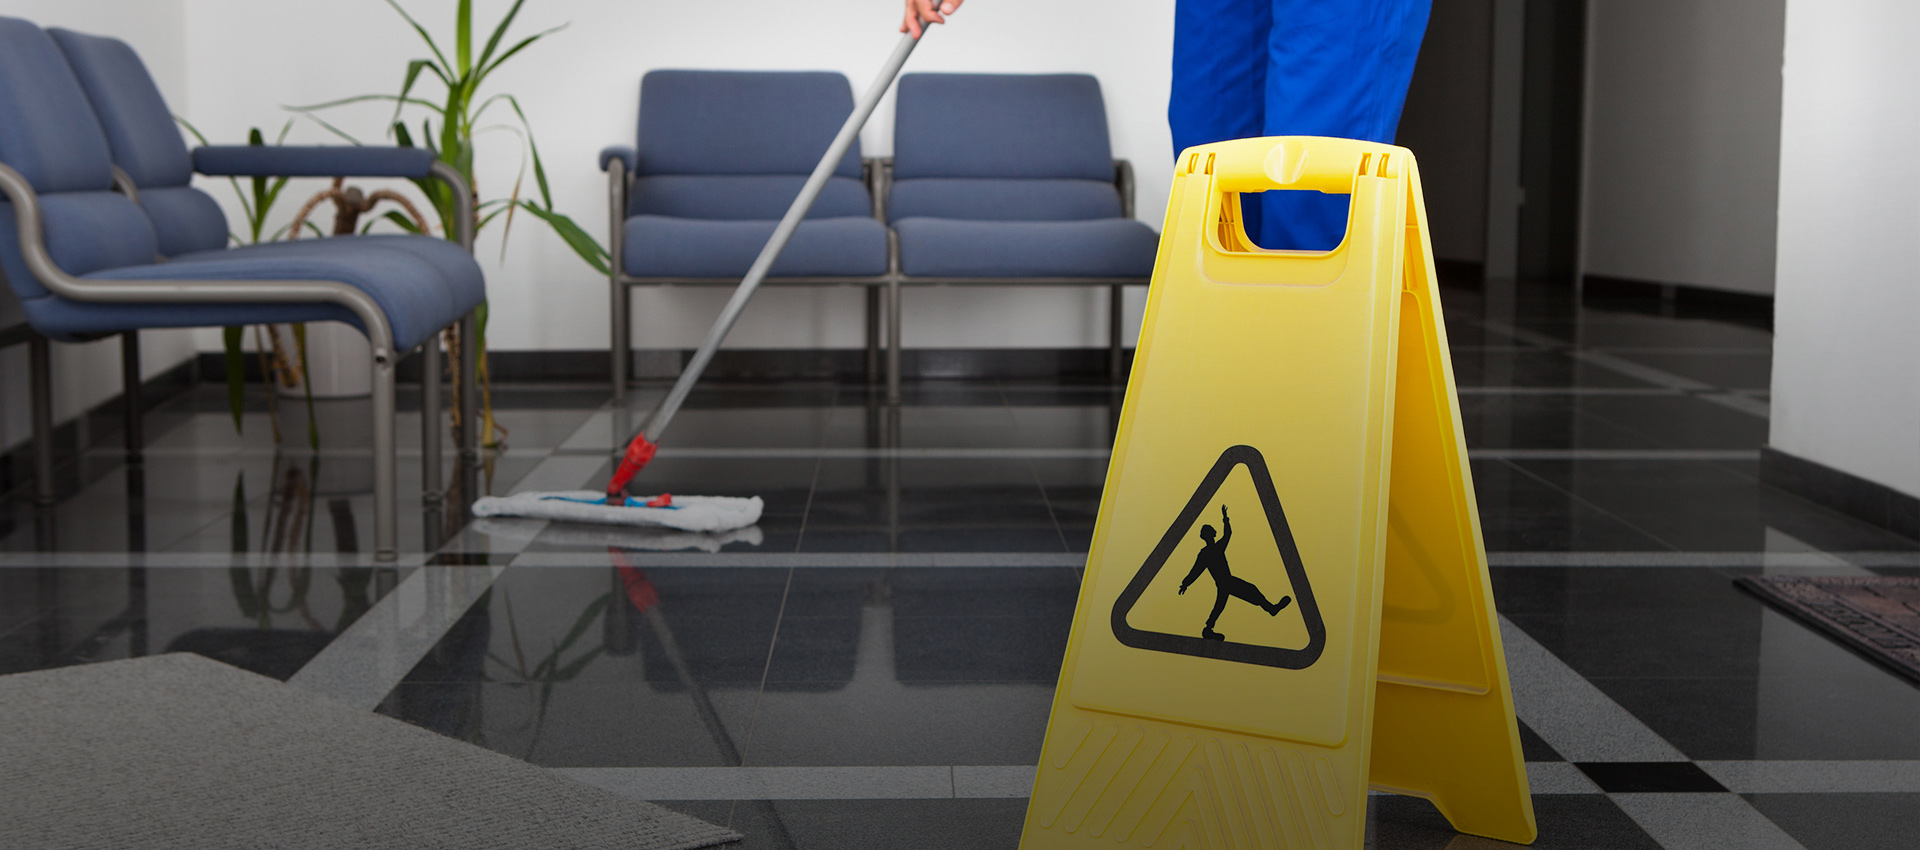 Able Business Services Inc: Commercial Cleaning, Landscaping and Trash Hauling in Miami, Fort Lauderdale and West Palm Beach